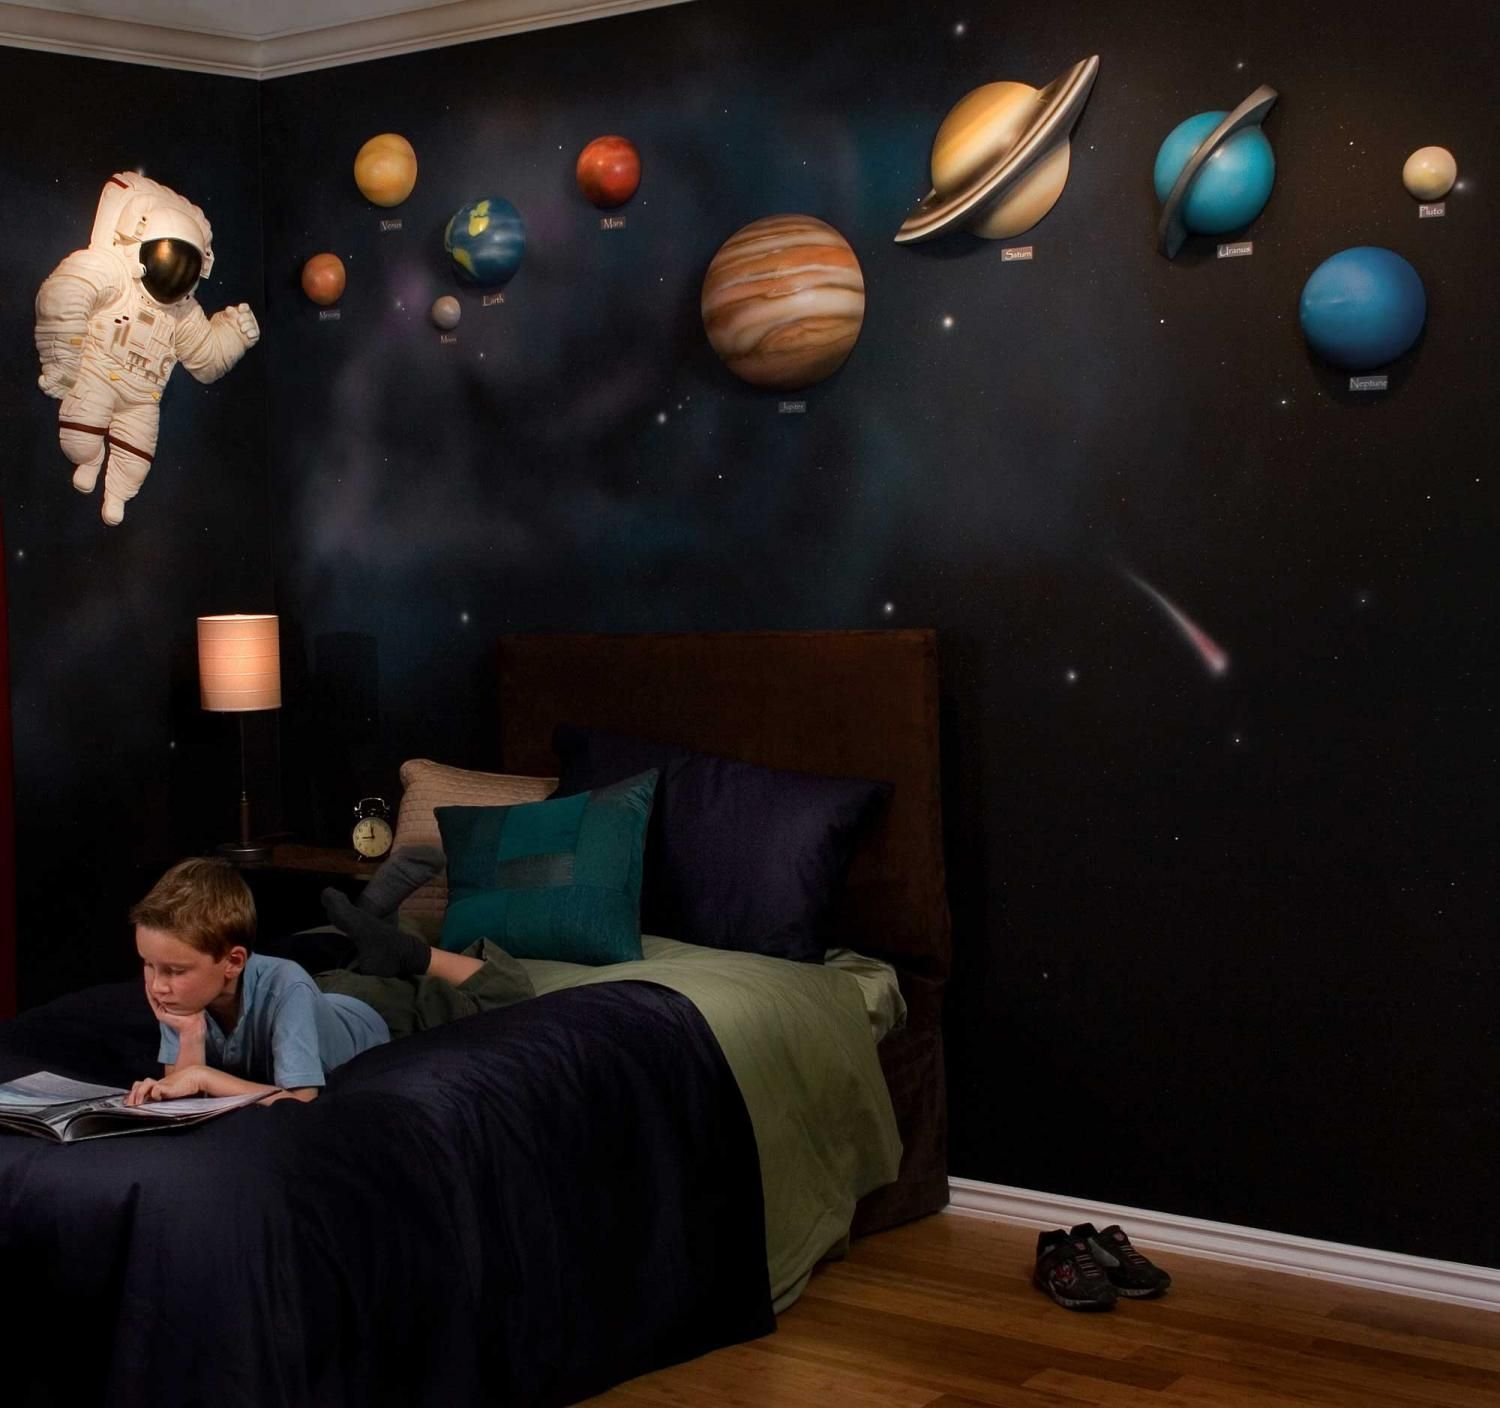 Solar System With Space Astronaut 3d Wall Art Decor By